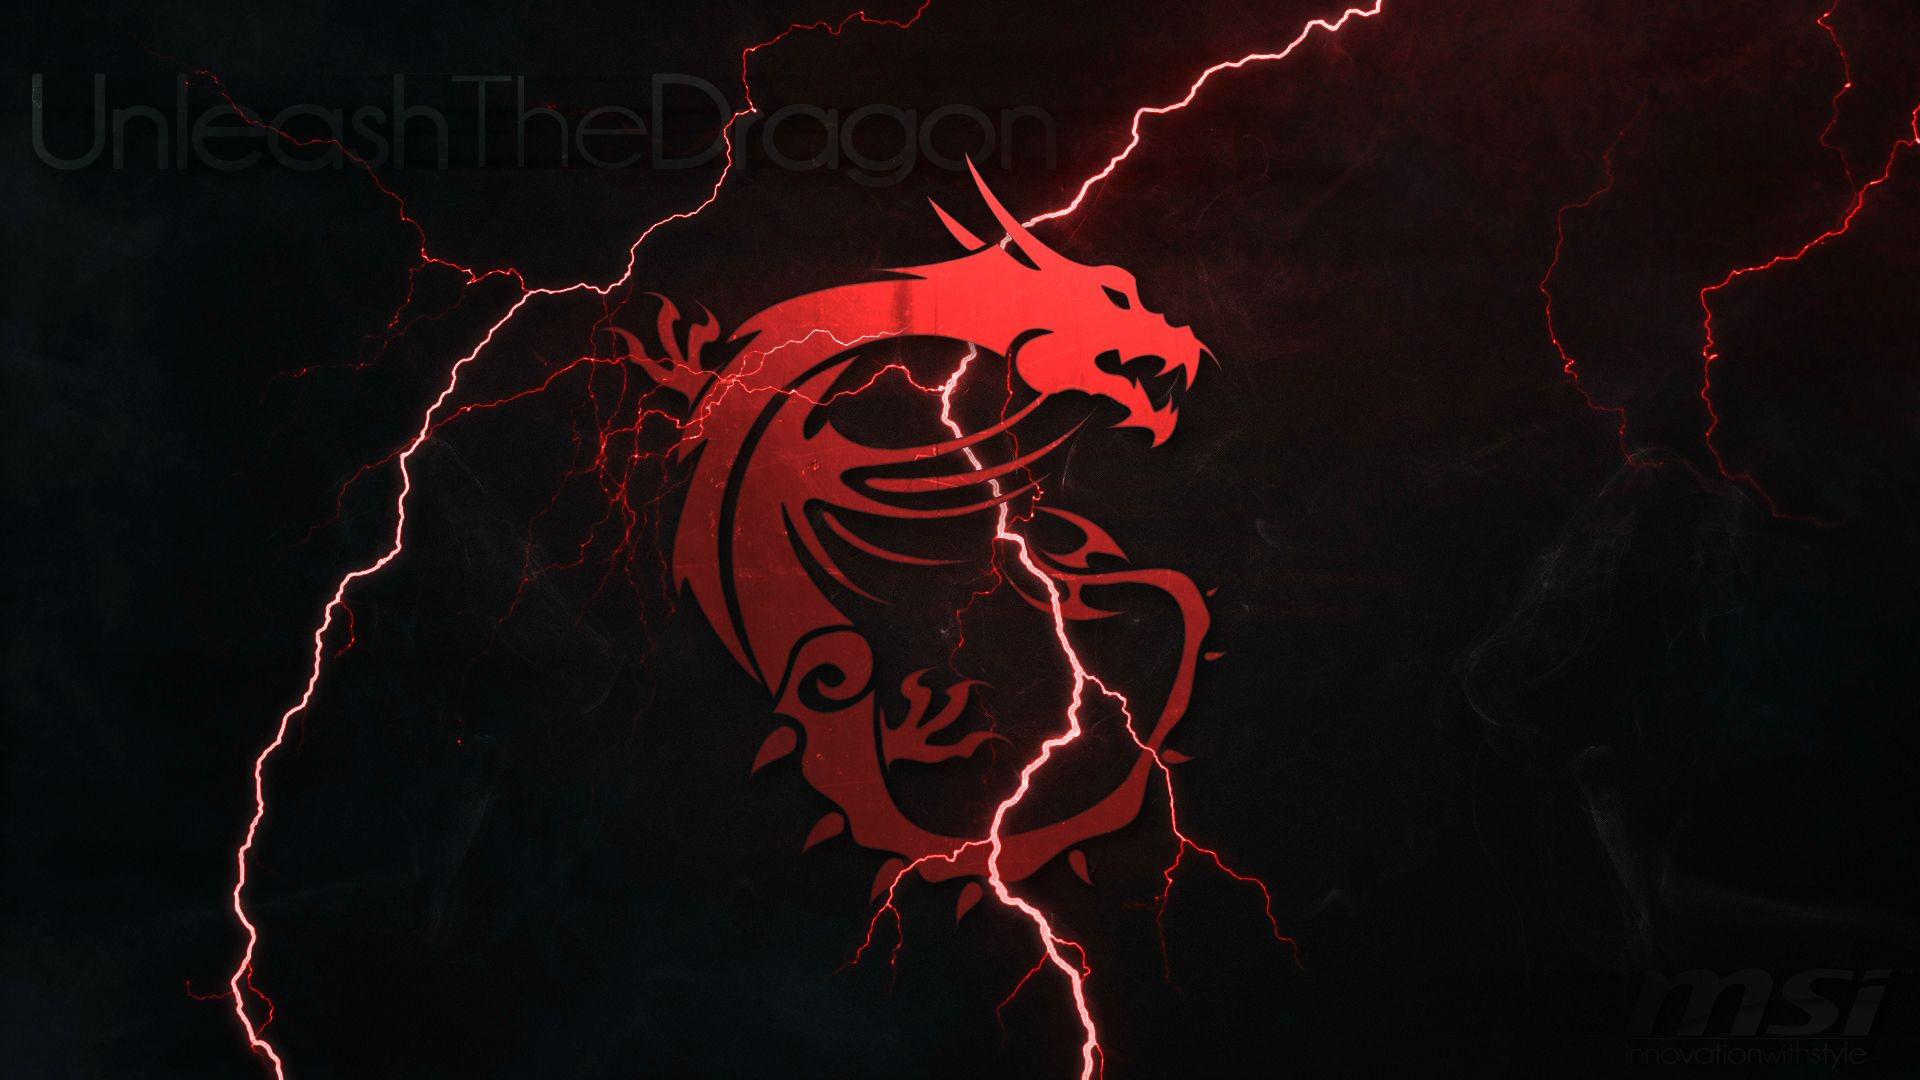 msi logo red dragon hd 1920x1080 1080p wallpaper compatible for 1920x1080